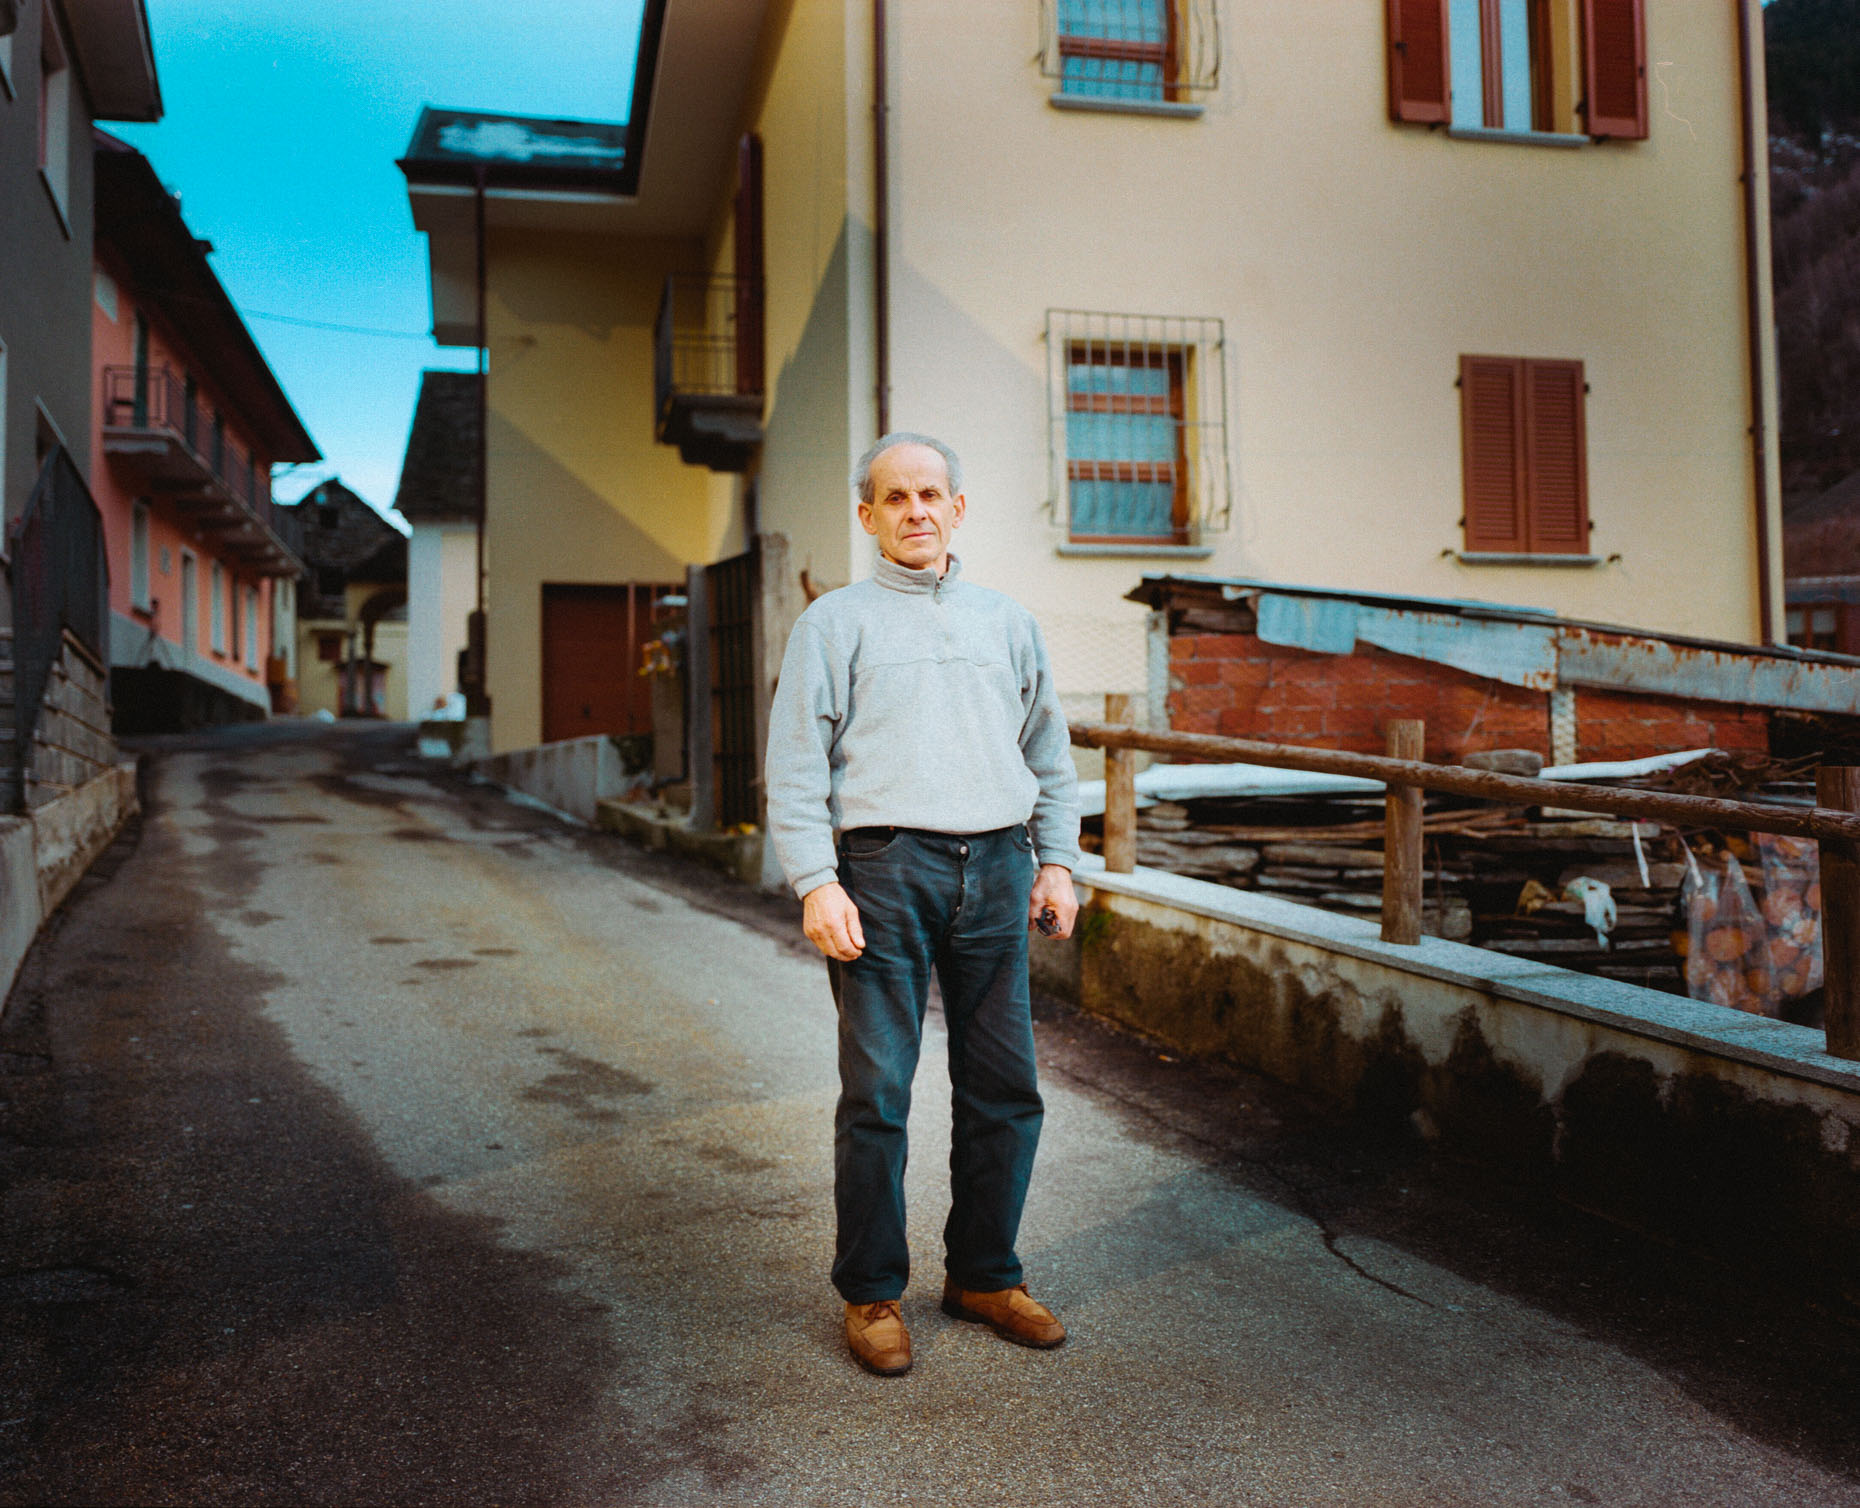 jon pack, photographer | portrait | viganella, italy